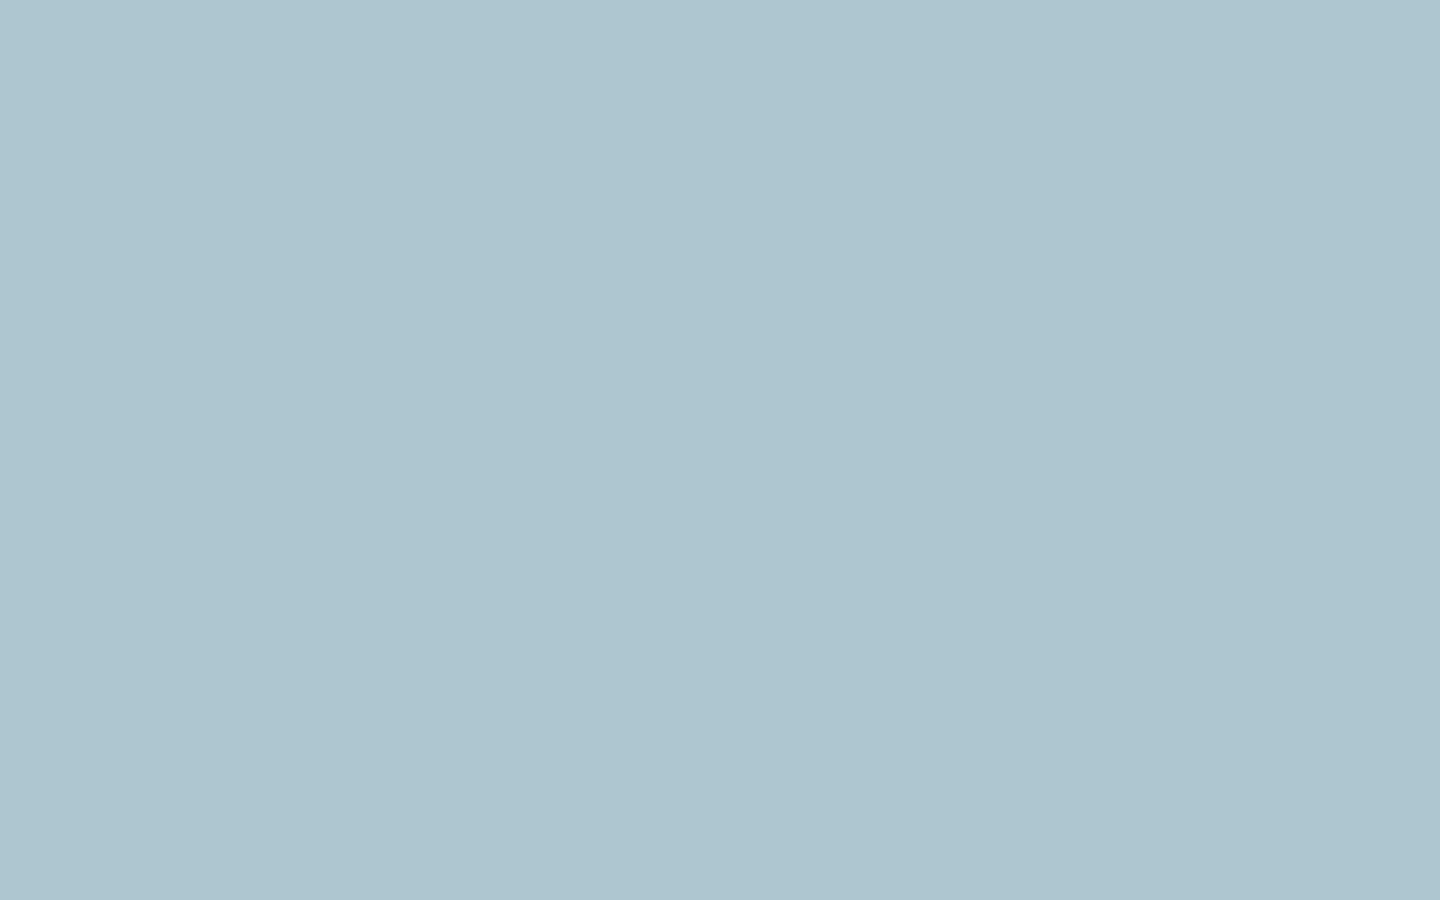 1440x900 Pastel Blue Solid Color Background